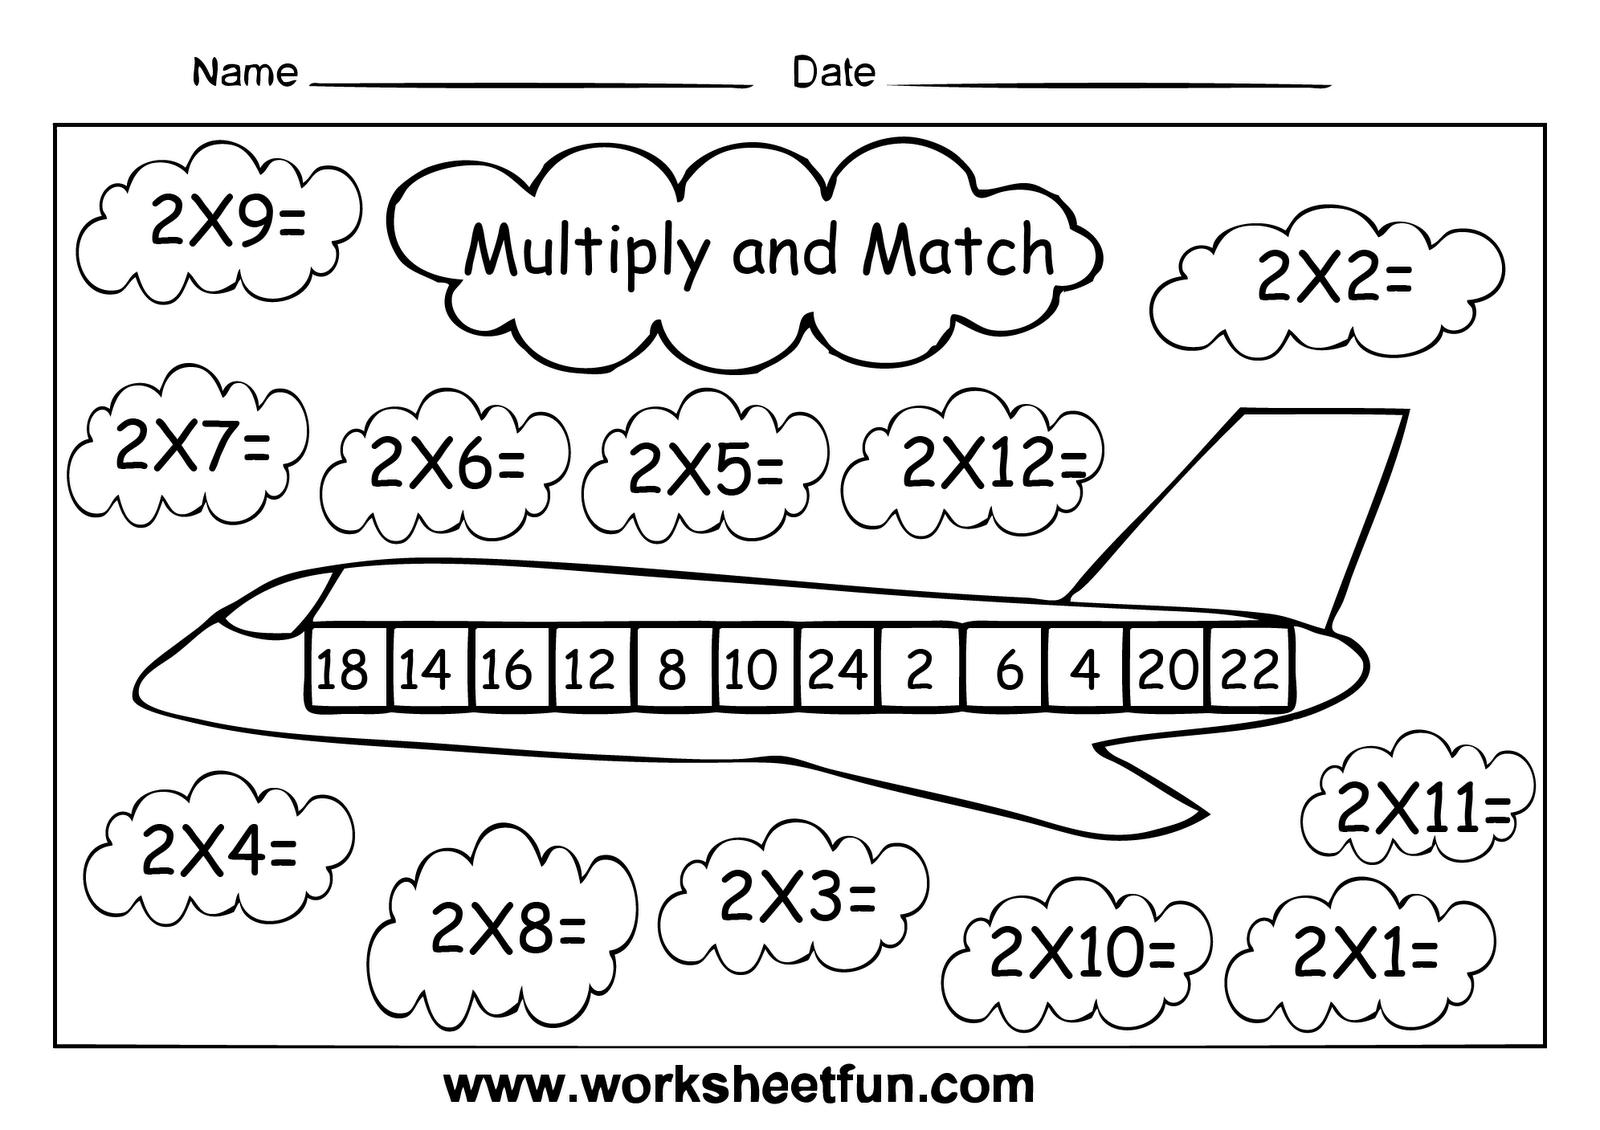 Multiplication Worksheets With Pictures 1